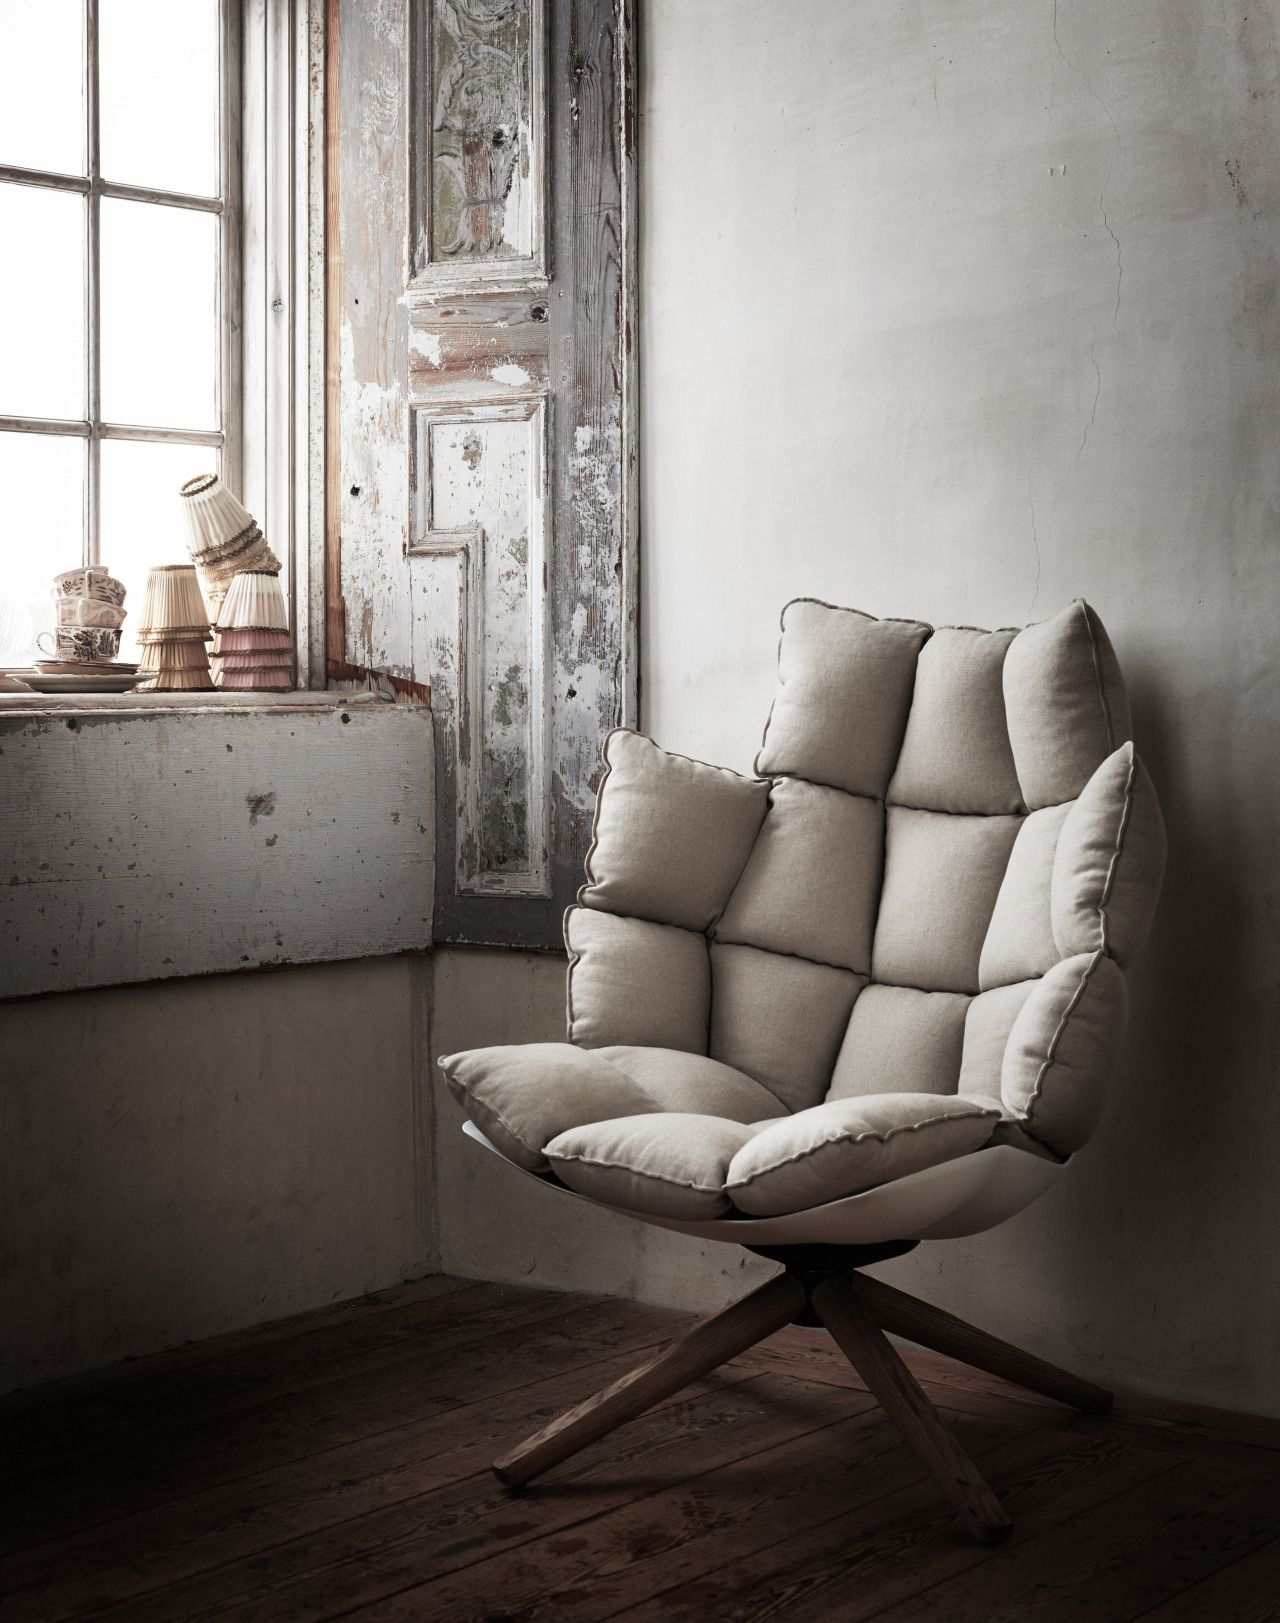 The Husk chair by Patricia Urquiola for B\u0026B Italia is the perfect ...